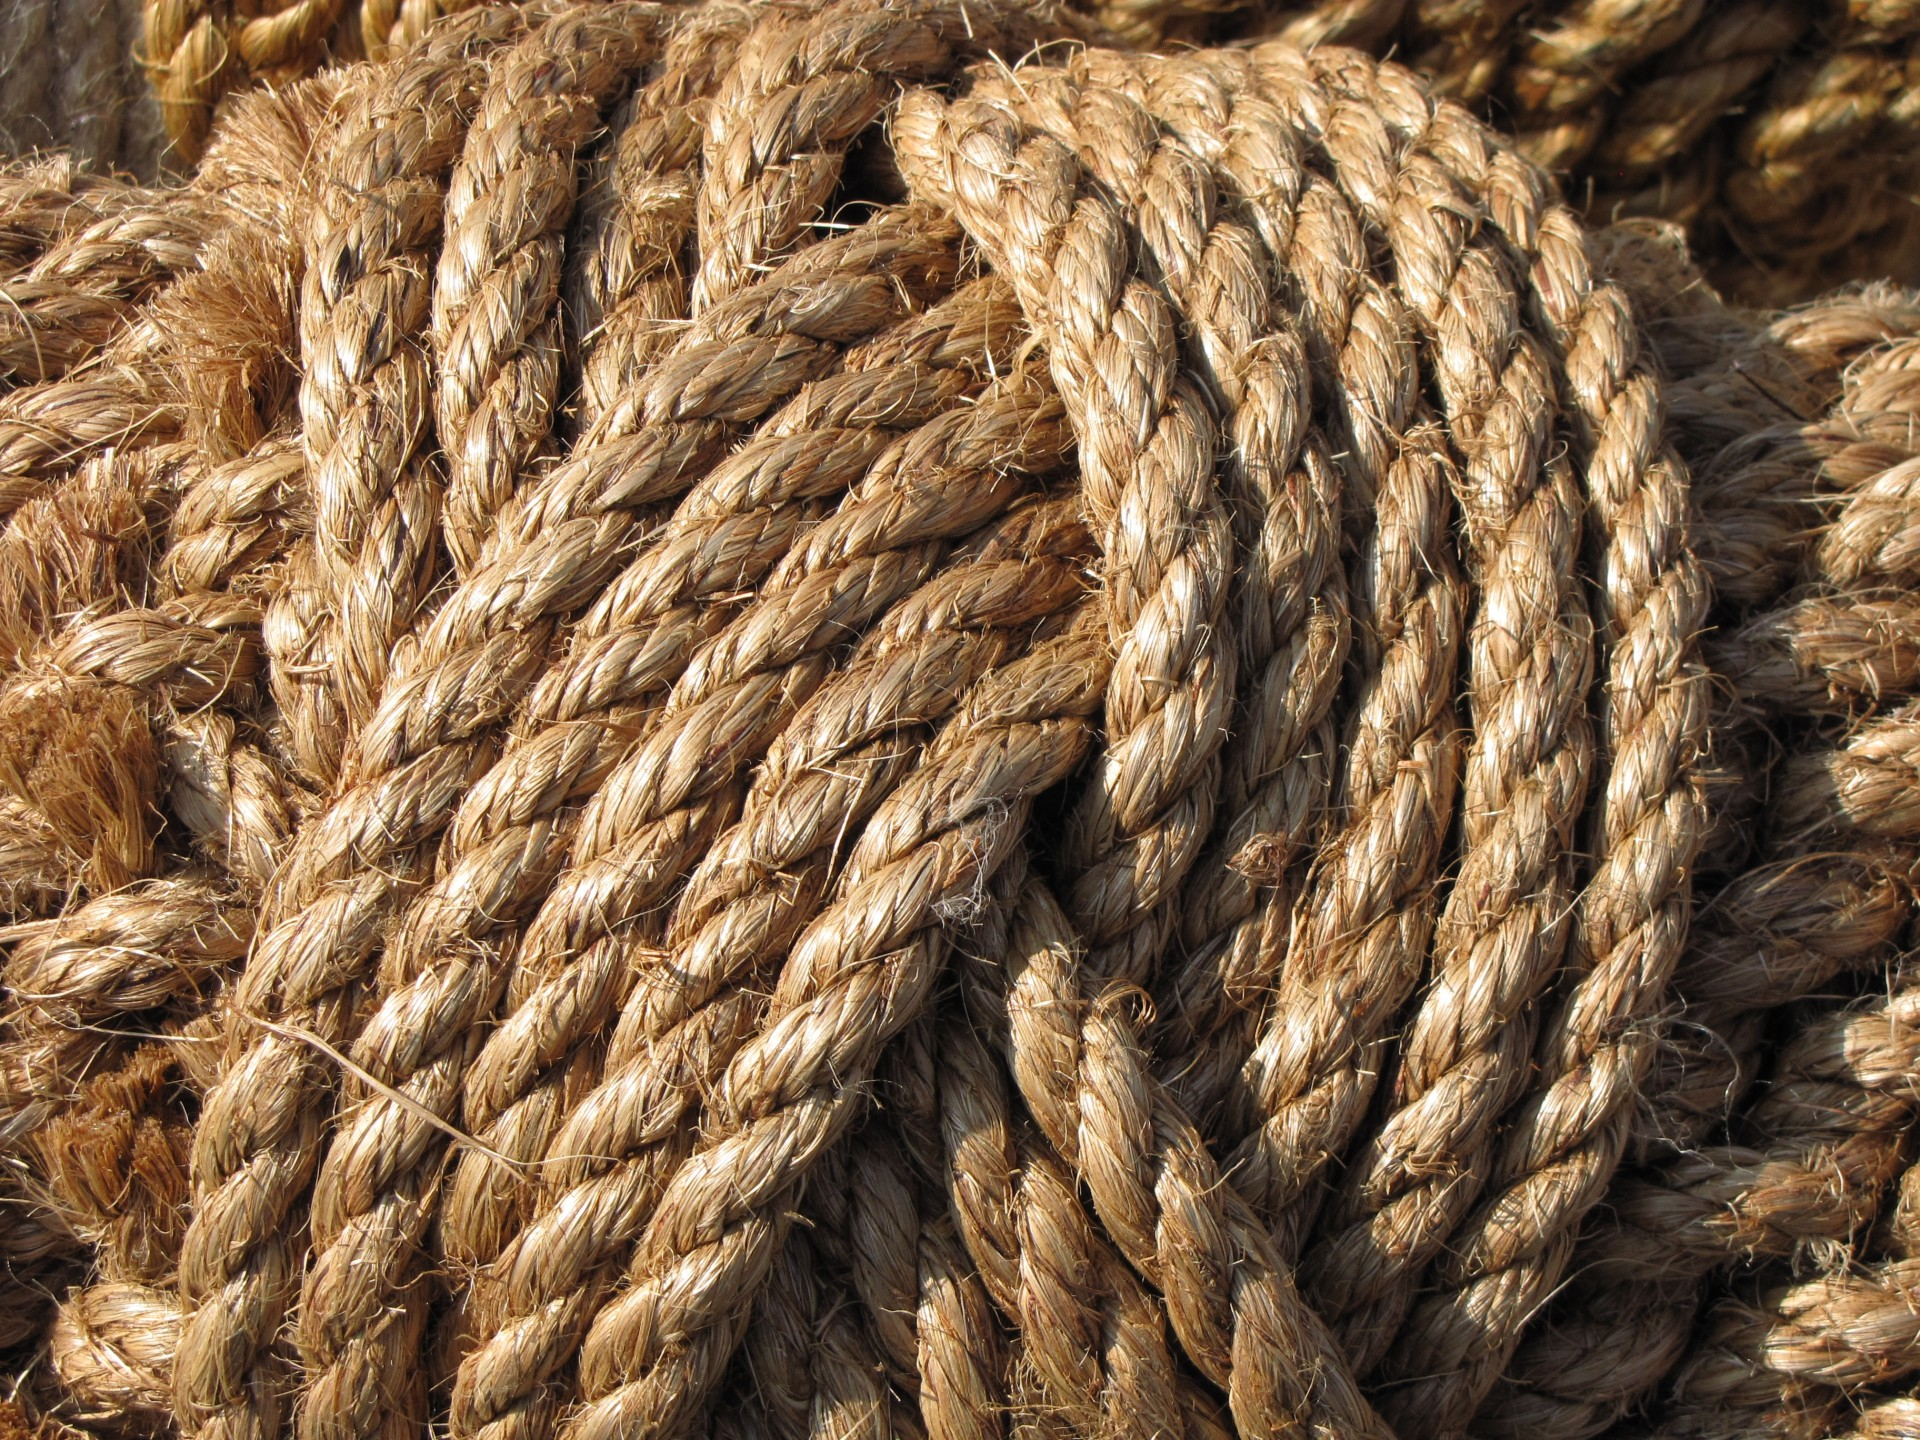 Rope,knot,sailor,ship,marine rope and knot - free photo from needpix com